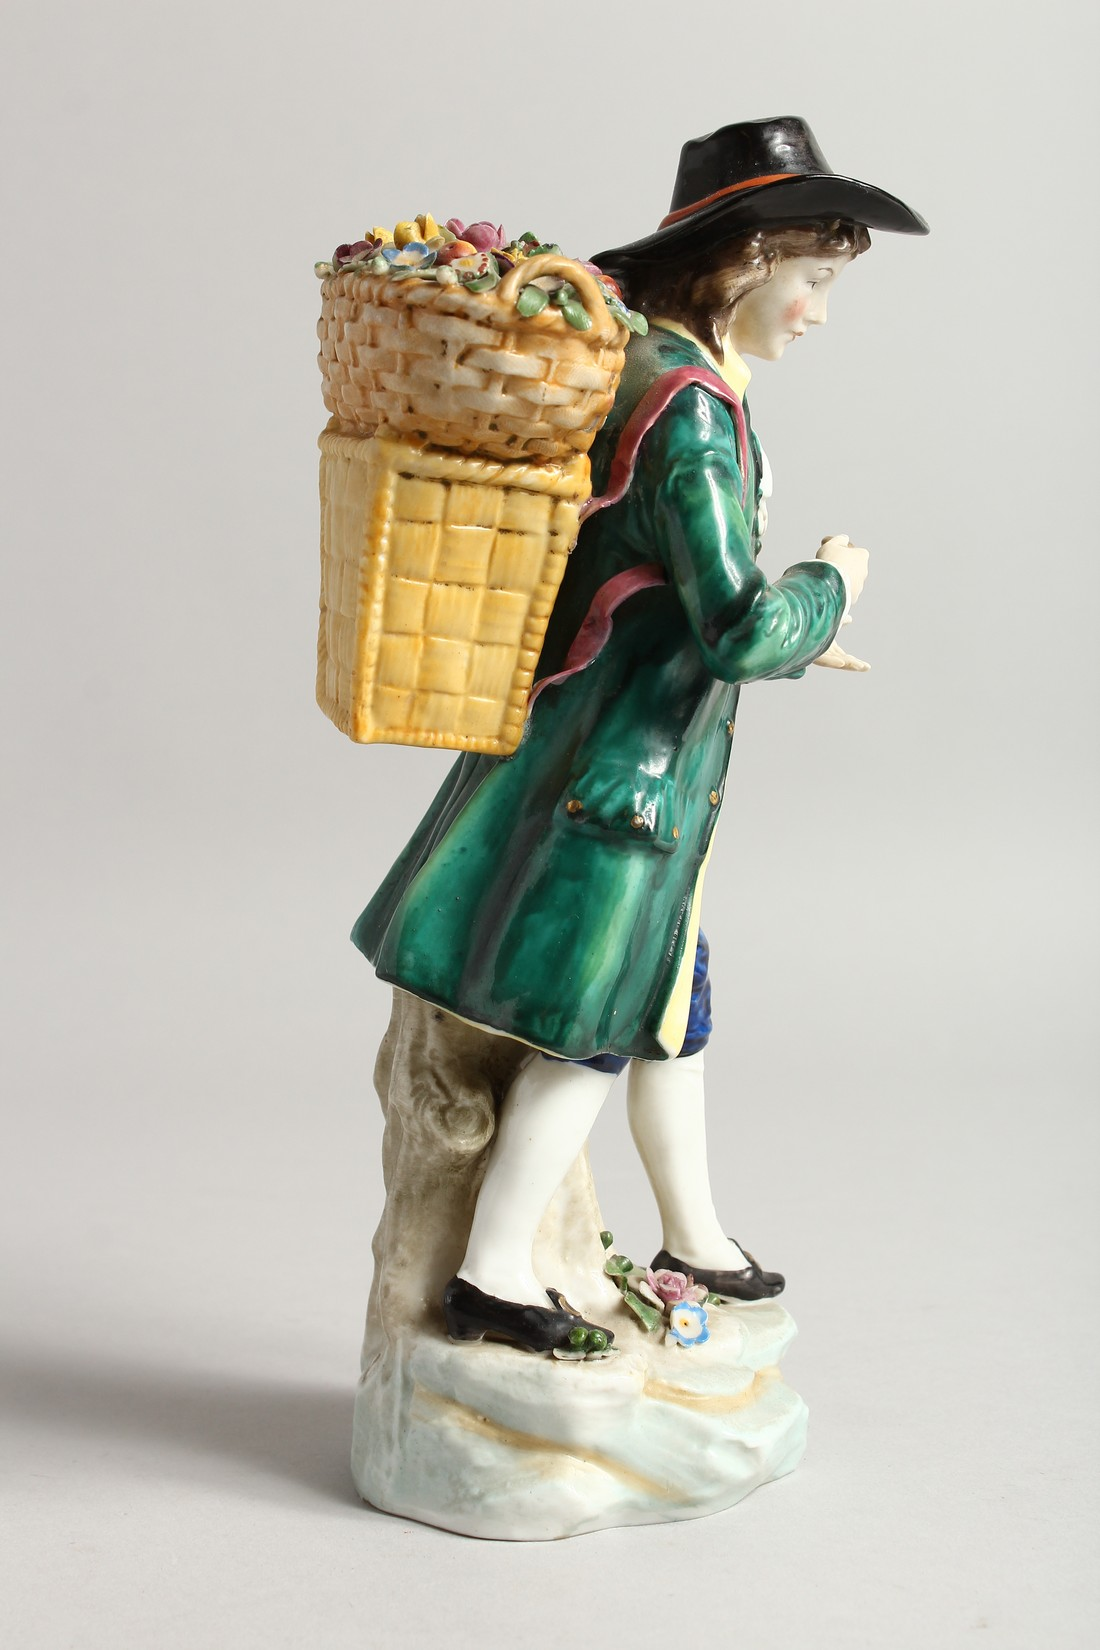 A SAMSON CHELSEA DERRY PORCELAIN FIGURE of a man, a basket of flowers on his back 9ins high. - Image 4 of 6